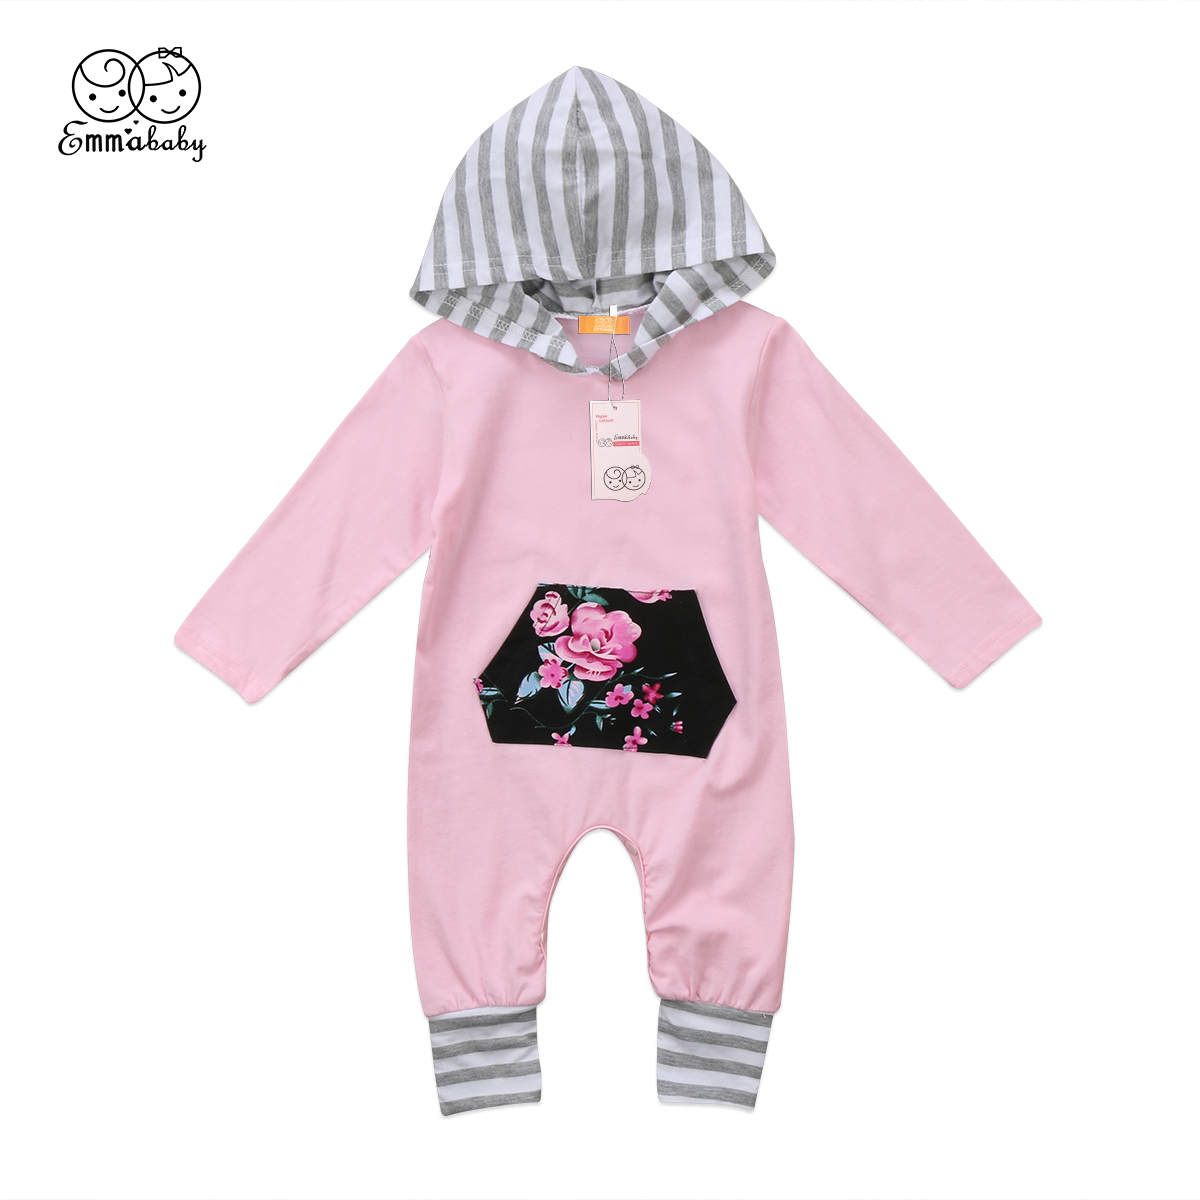 2018 New Casual Babies   Rompers   Toddler Infant Boys Girls Cotton Striped Floral Patchwork Hodded   Romper   Jumpsuit Clothes Outfits